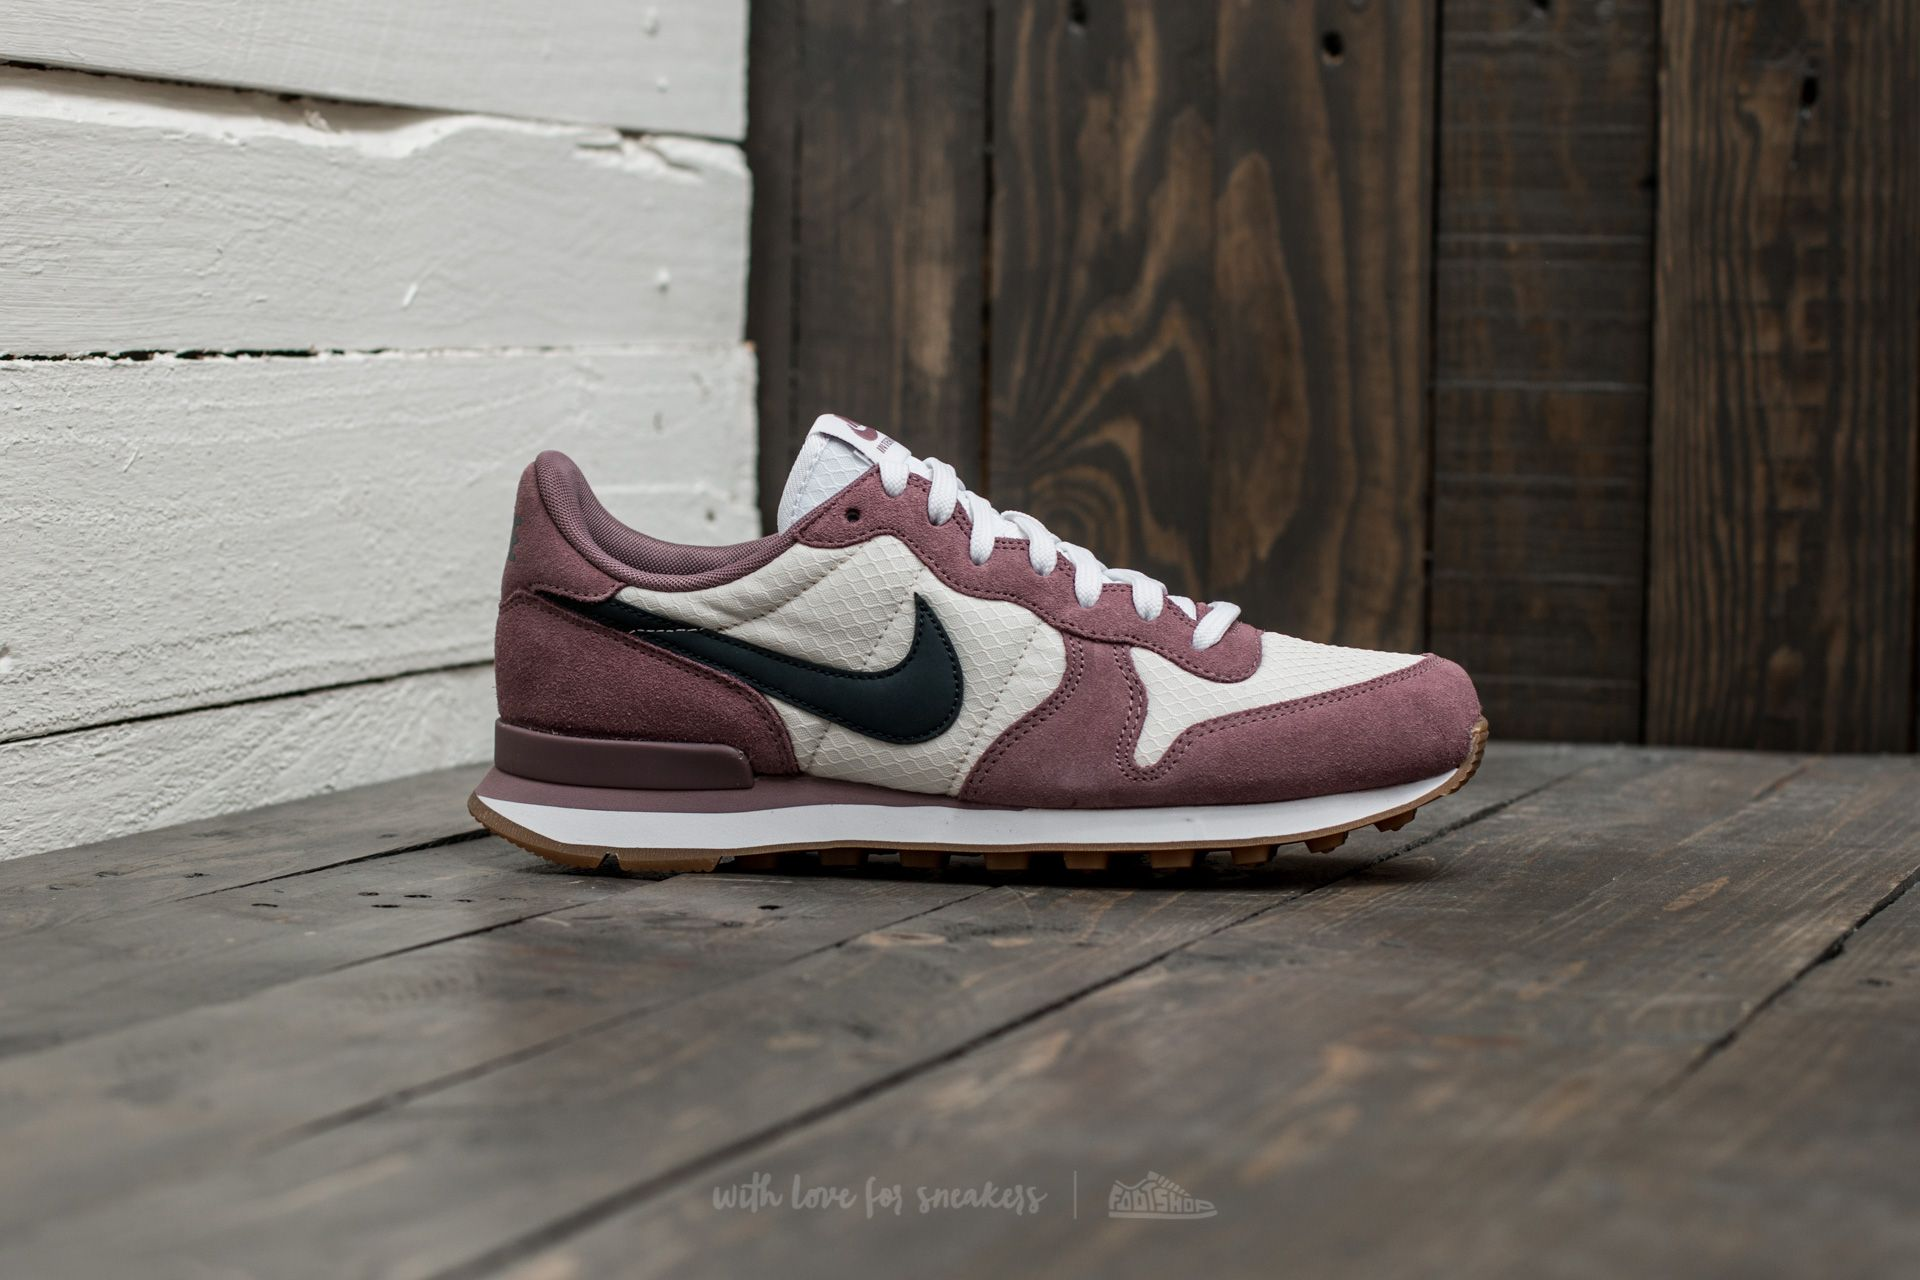 outlet store f9a81 c0fb5 ... uk 6 womens nike internationalist pink yellow Nike W Internationalist  Taupe Grey Armory Navy at a great price £82 buy at